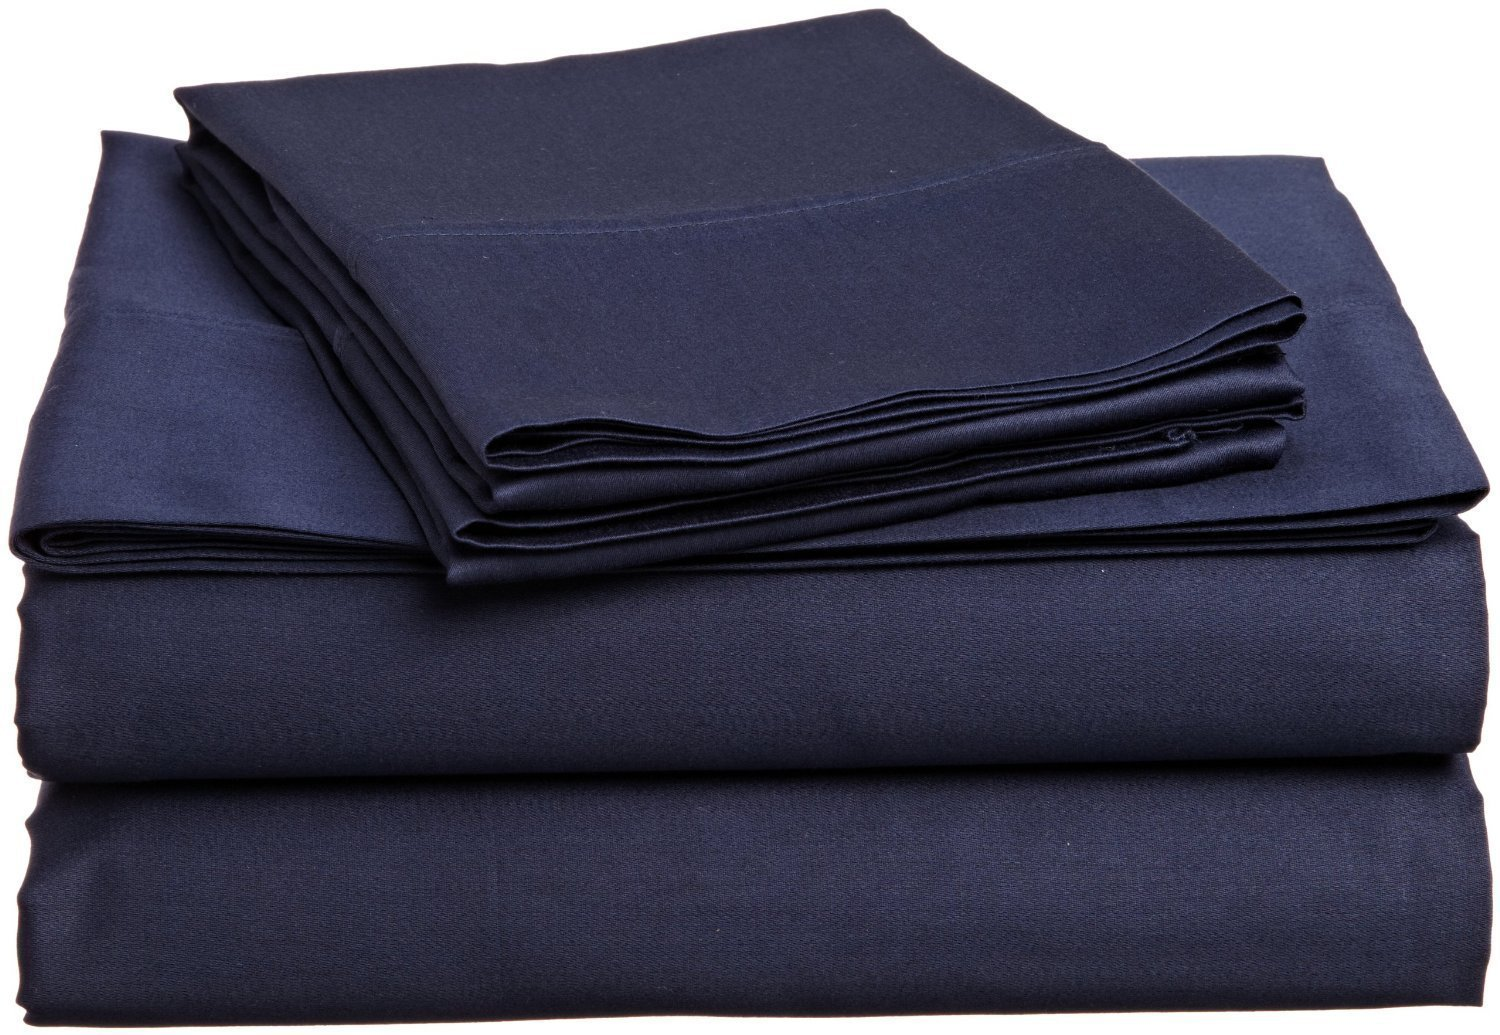 SRP Bedding 500 Thread Count Pure Pure Egyptian Cotton Super Soft 1-Piece Flat Sheet/Top Sheet Full/Double Solid Navy Blue